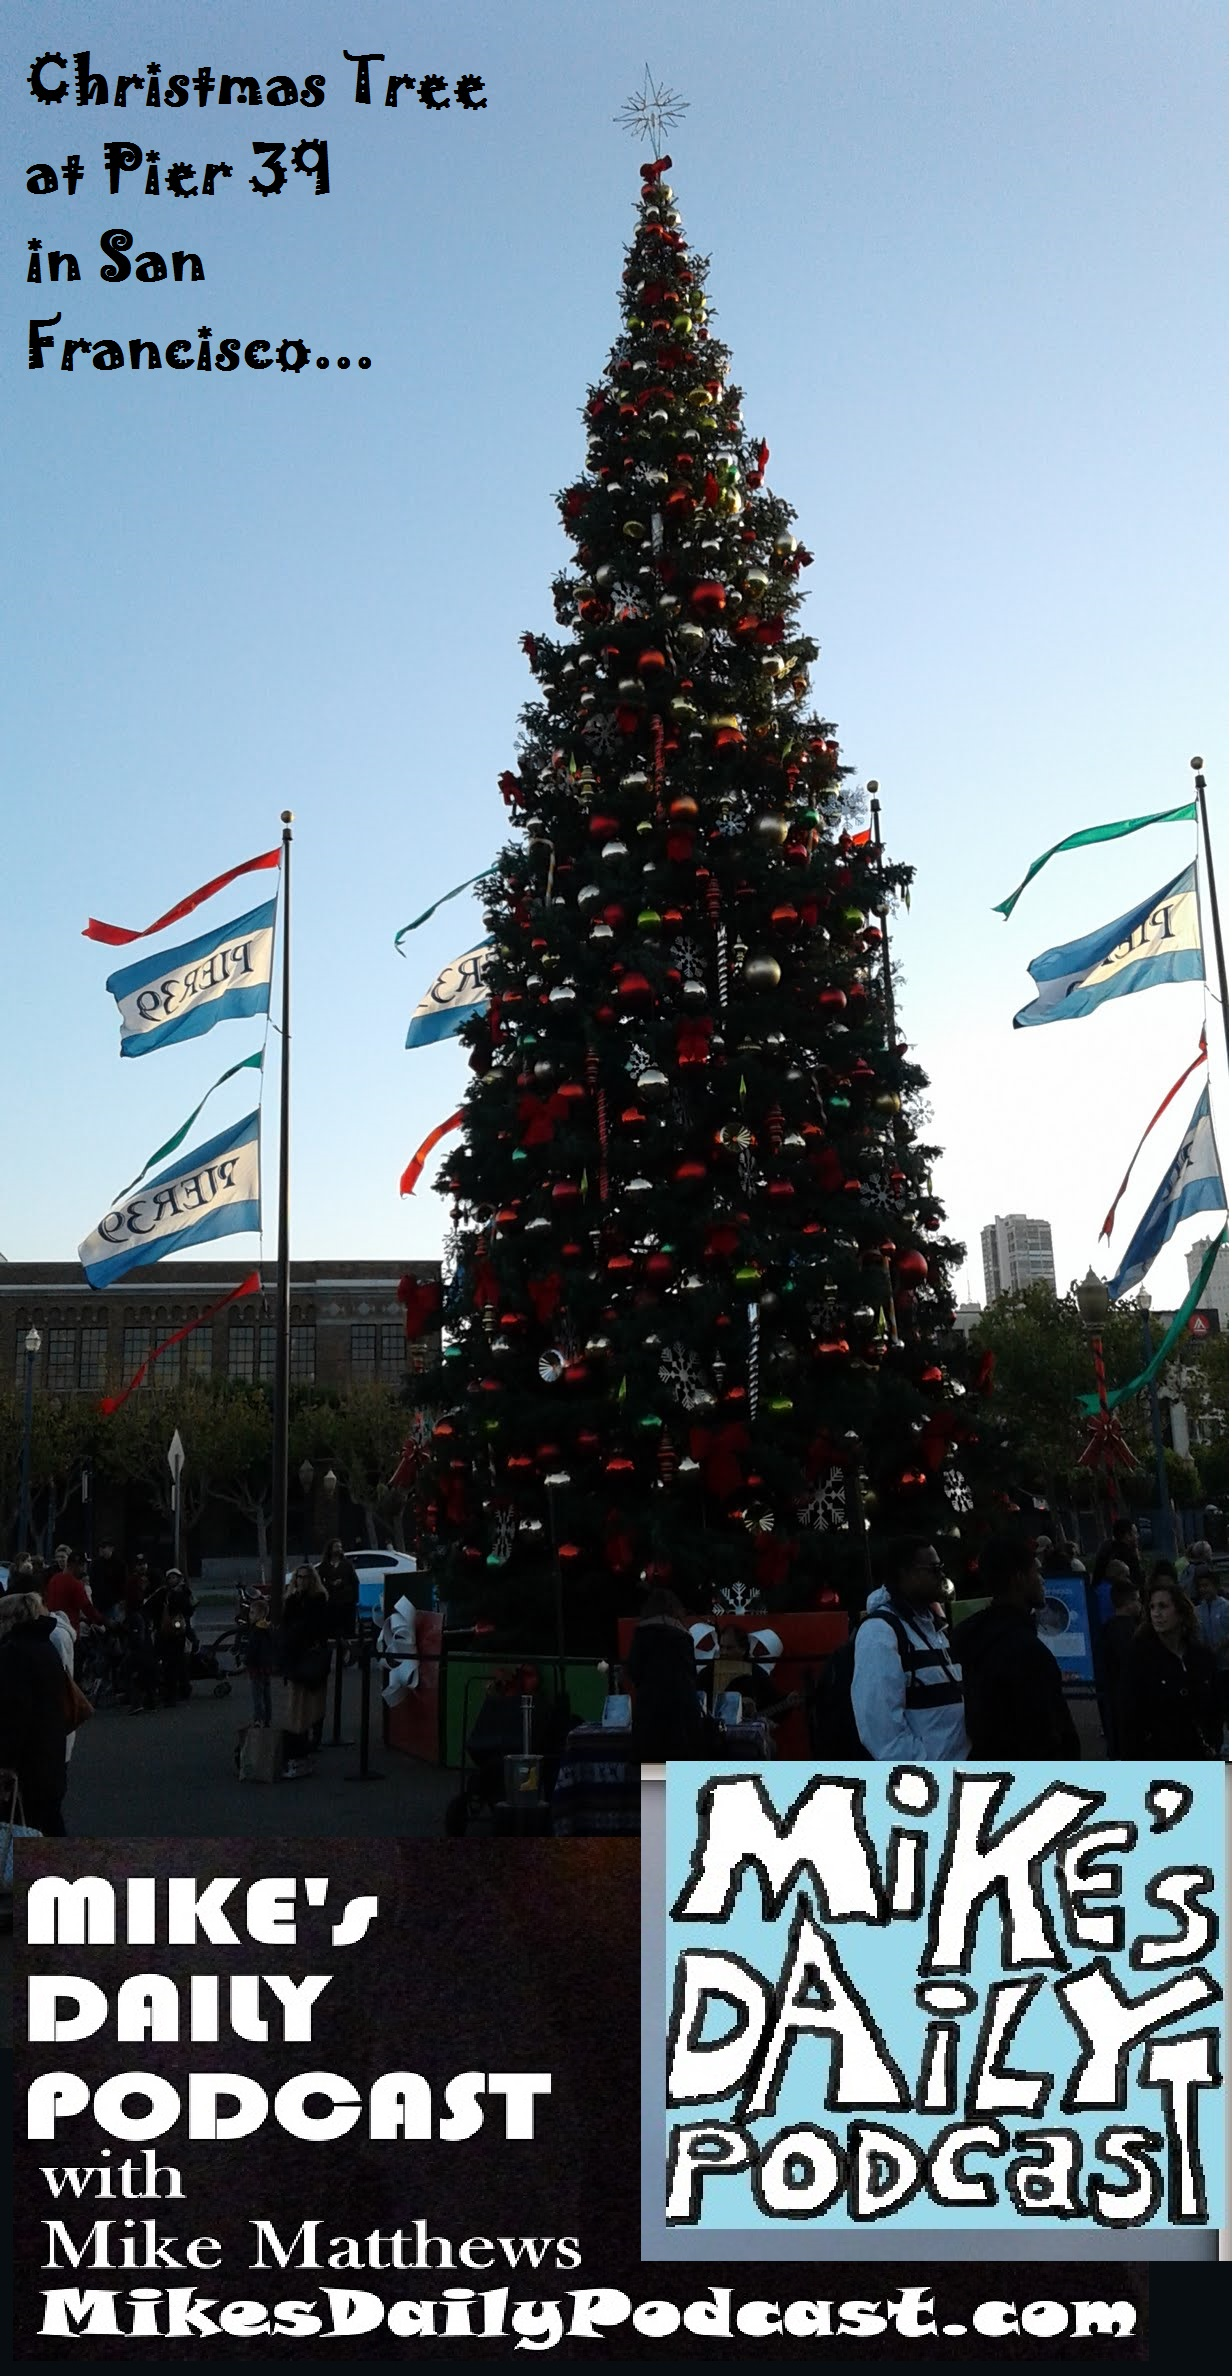 mikes-daily-podcast-1230-pier-39-christmas-tree